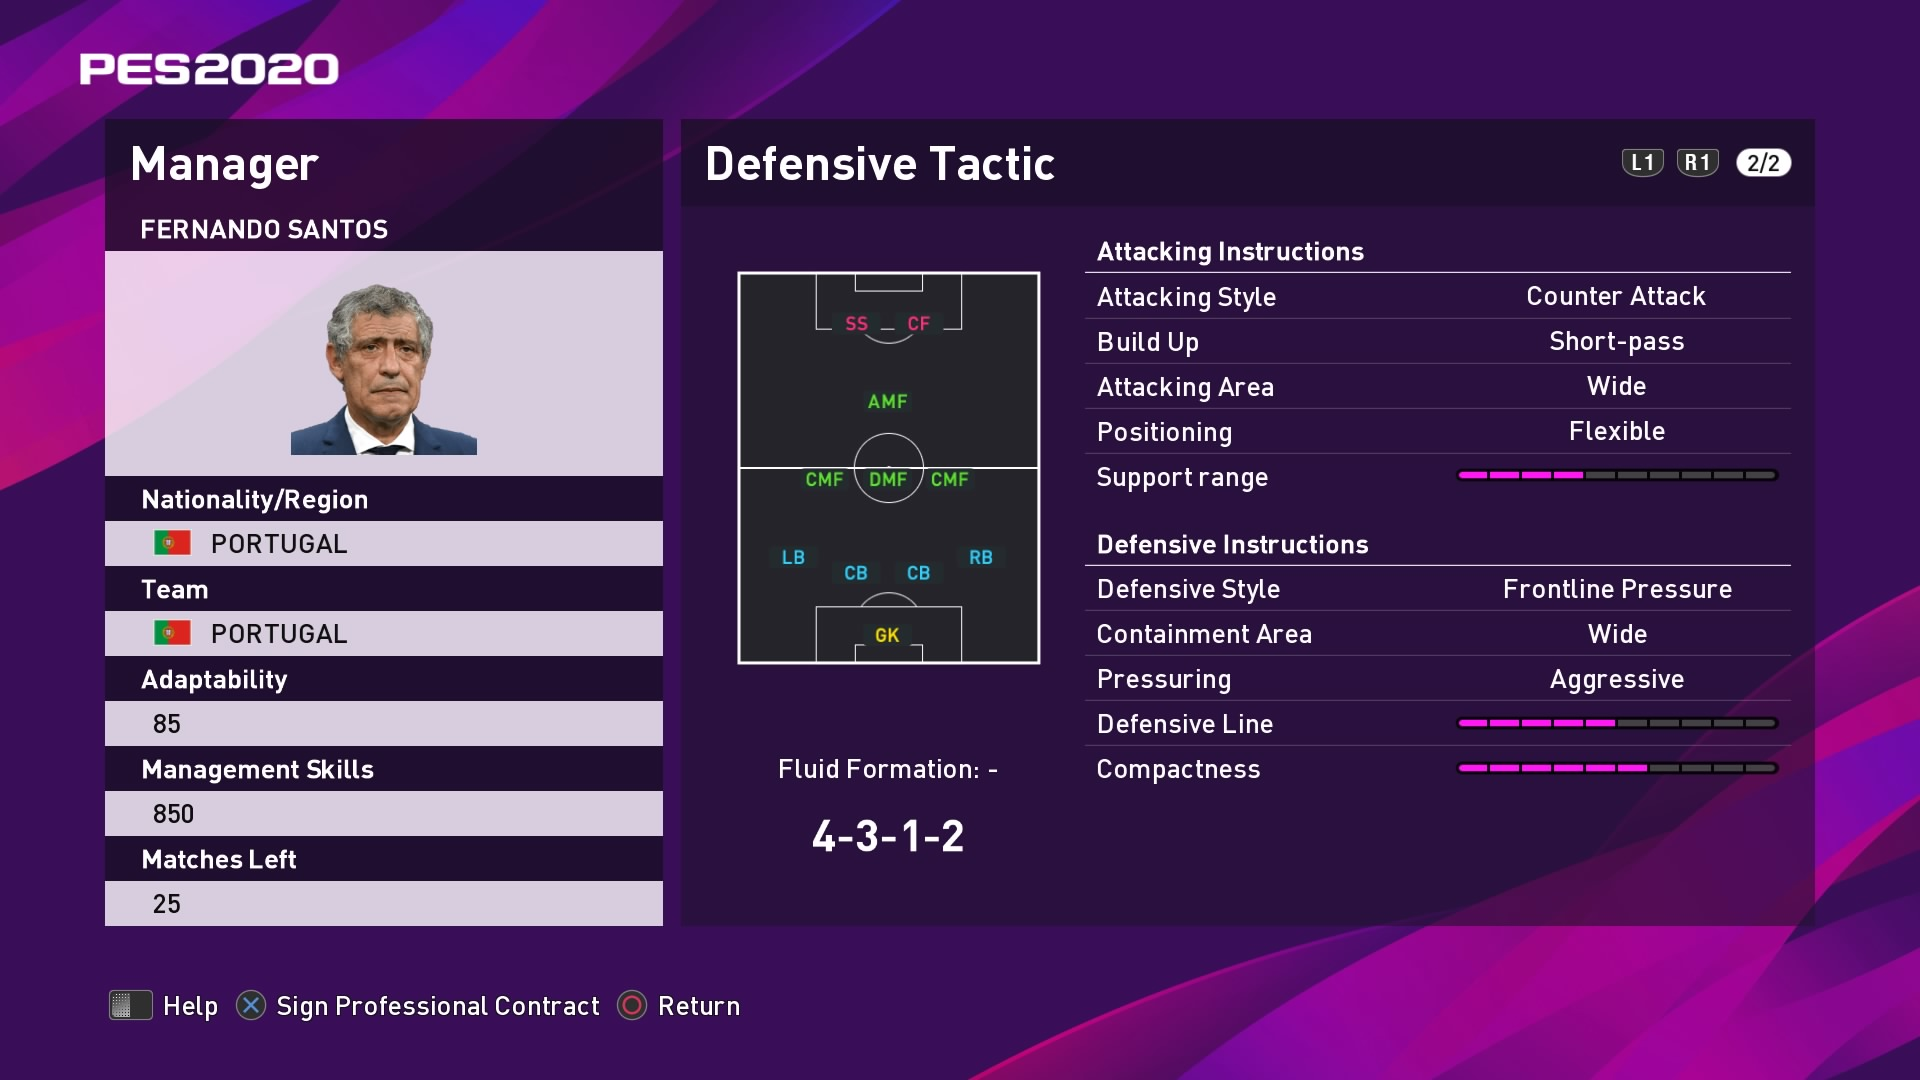 Fernando Santos (2) Defensive Tactic in PES 2020 myClub